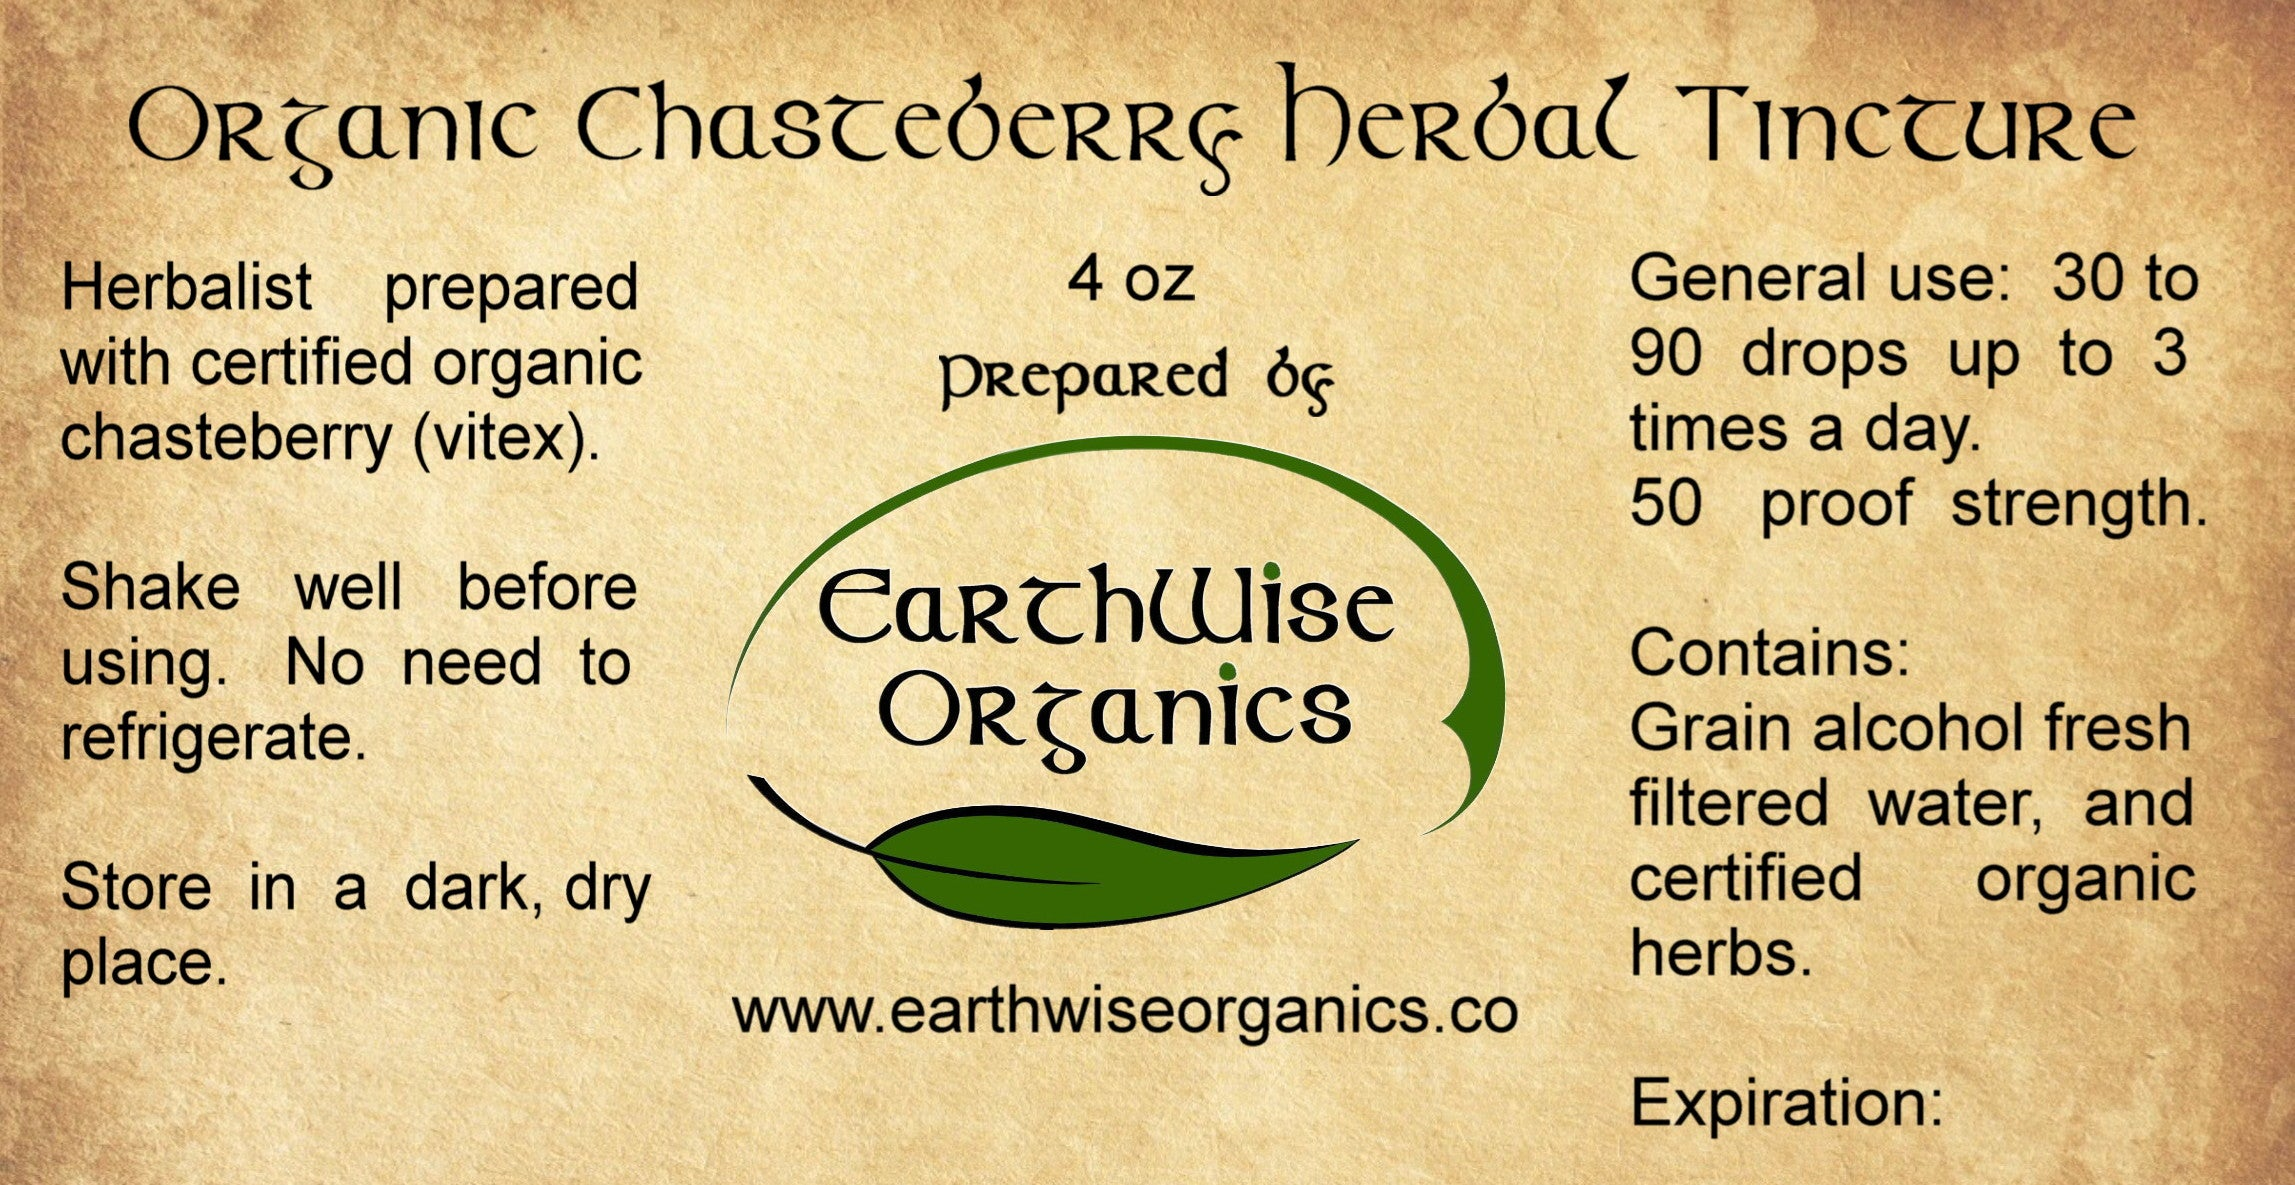 chasteberry organic herbal tincture label